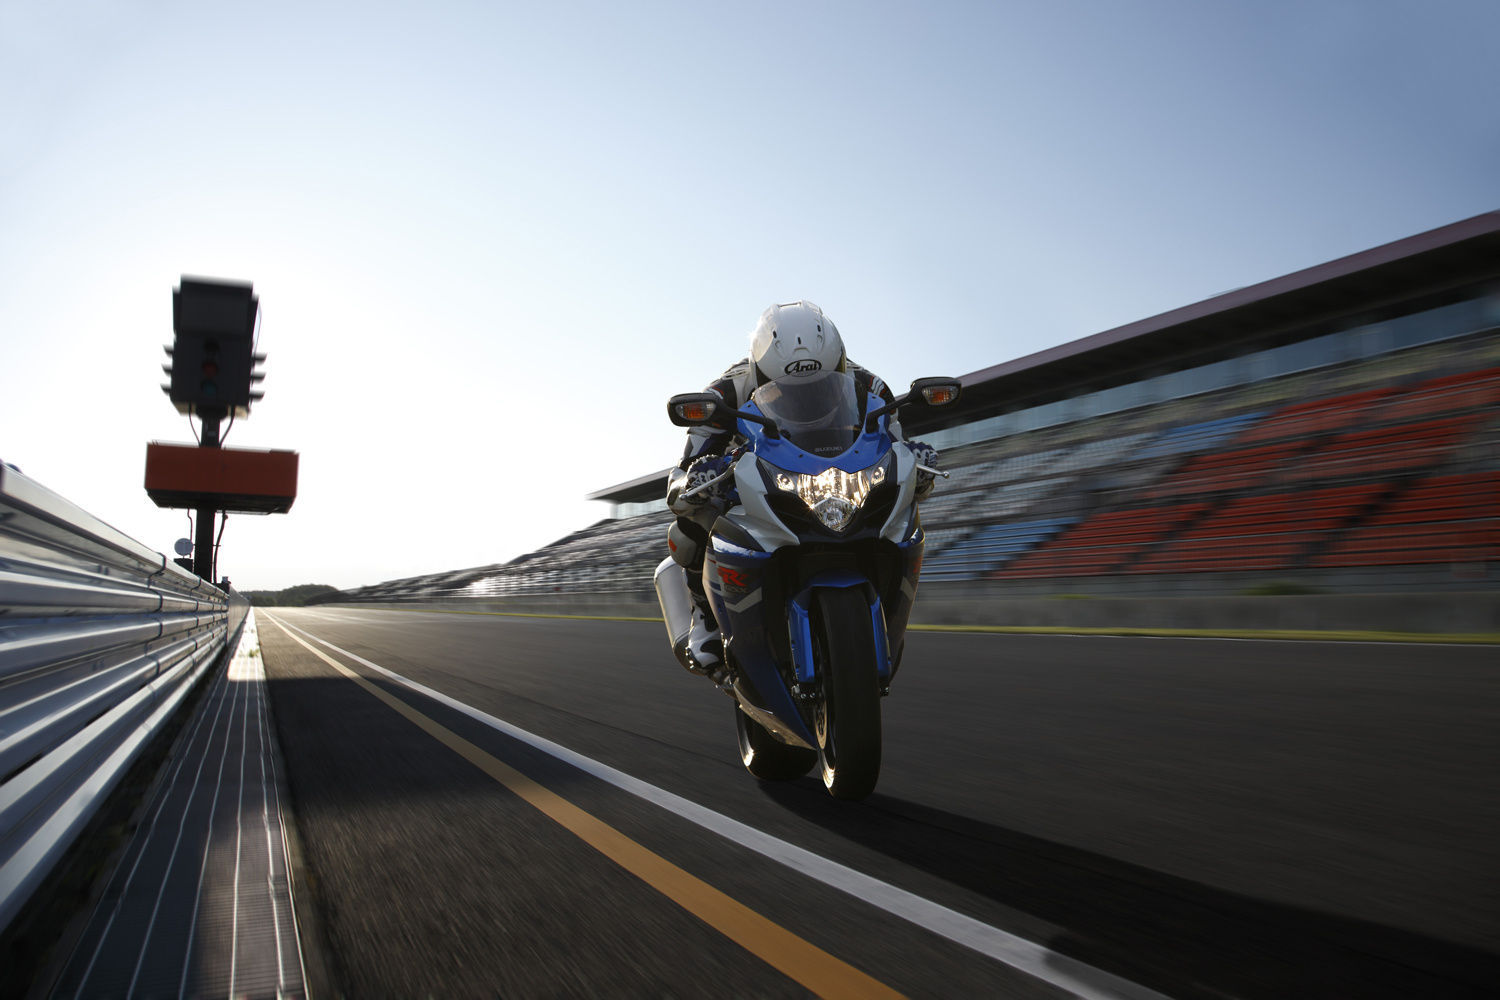 2014 Suzuki GSX-R1000 | The GSX-R1000